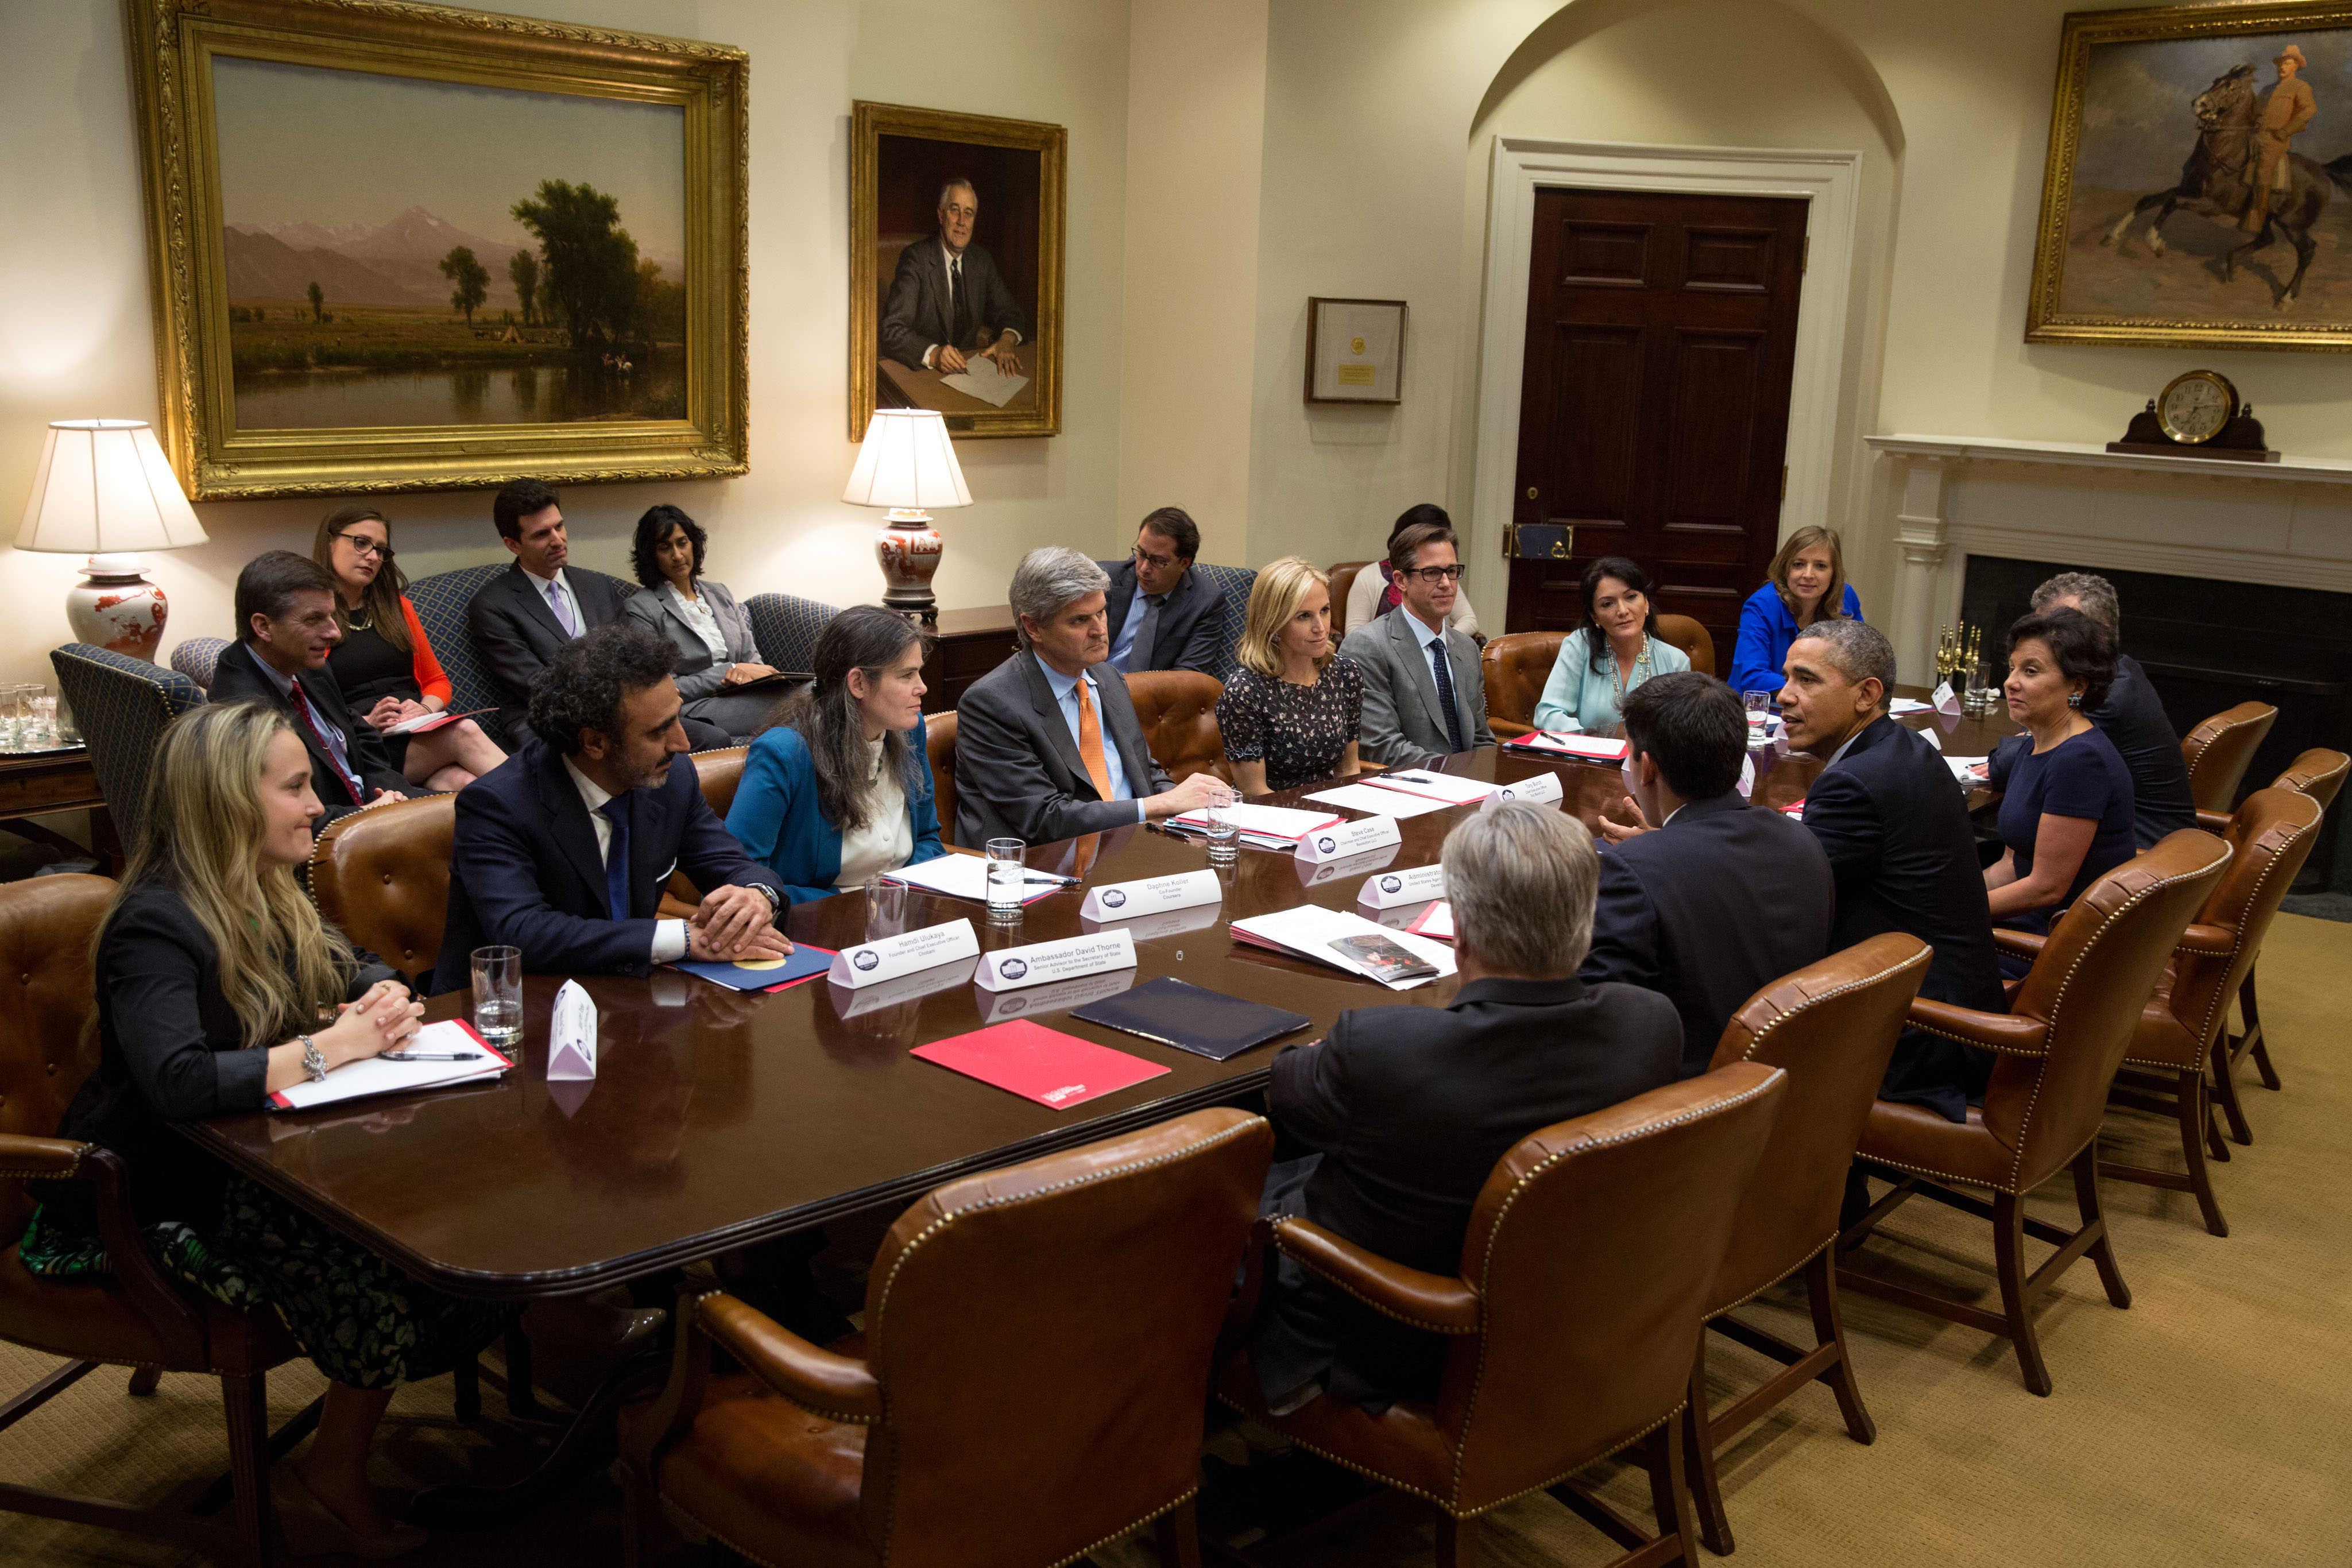 President Barack Obama drops by the first meeting of the Presidential Ambassadors for Global Entrepreneurship, with Commerce Secretary Penny Pritzker, in the Roosevelt Room of the White House